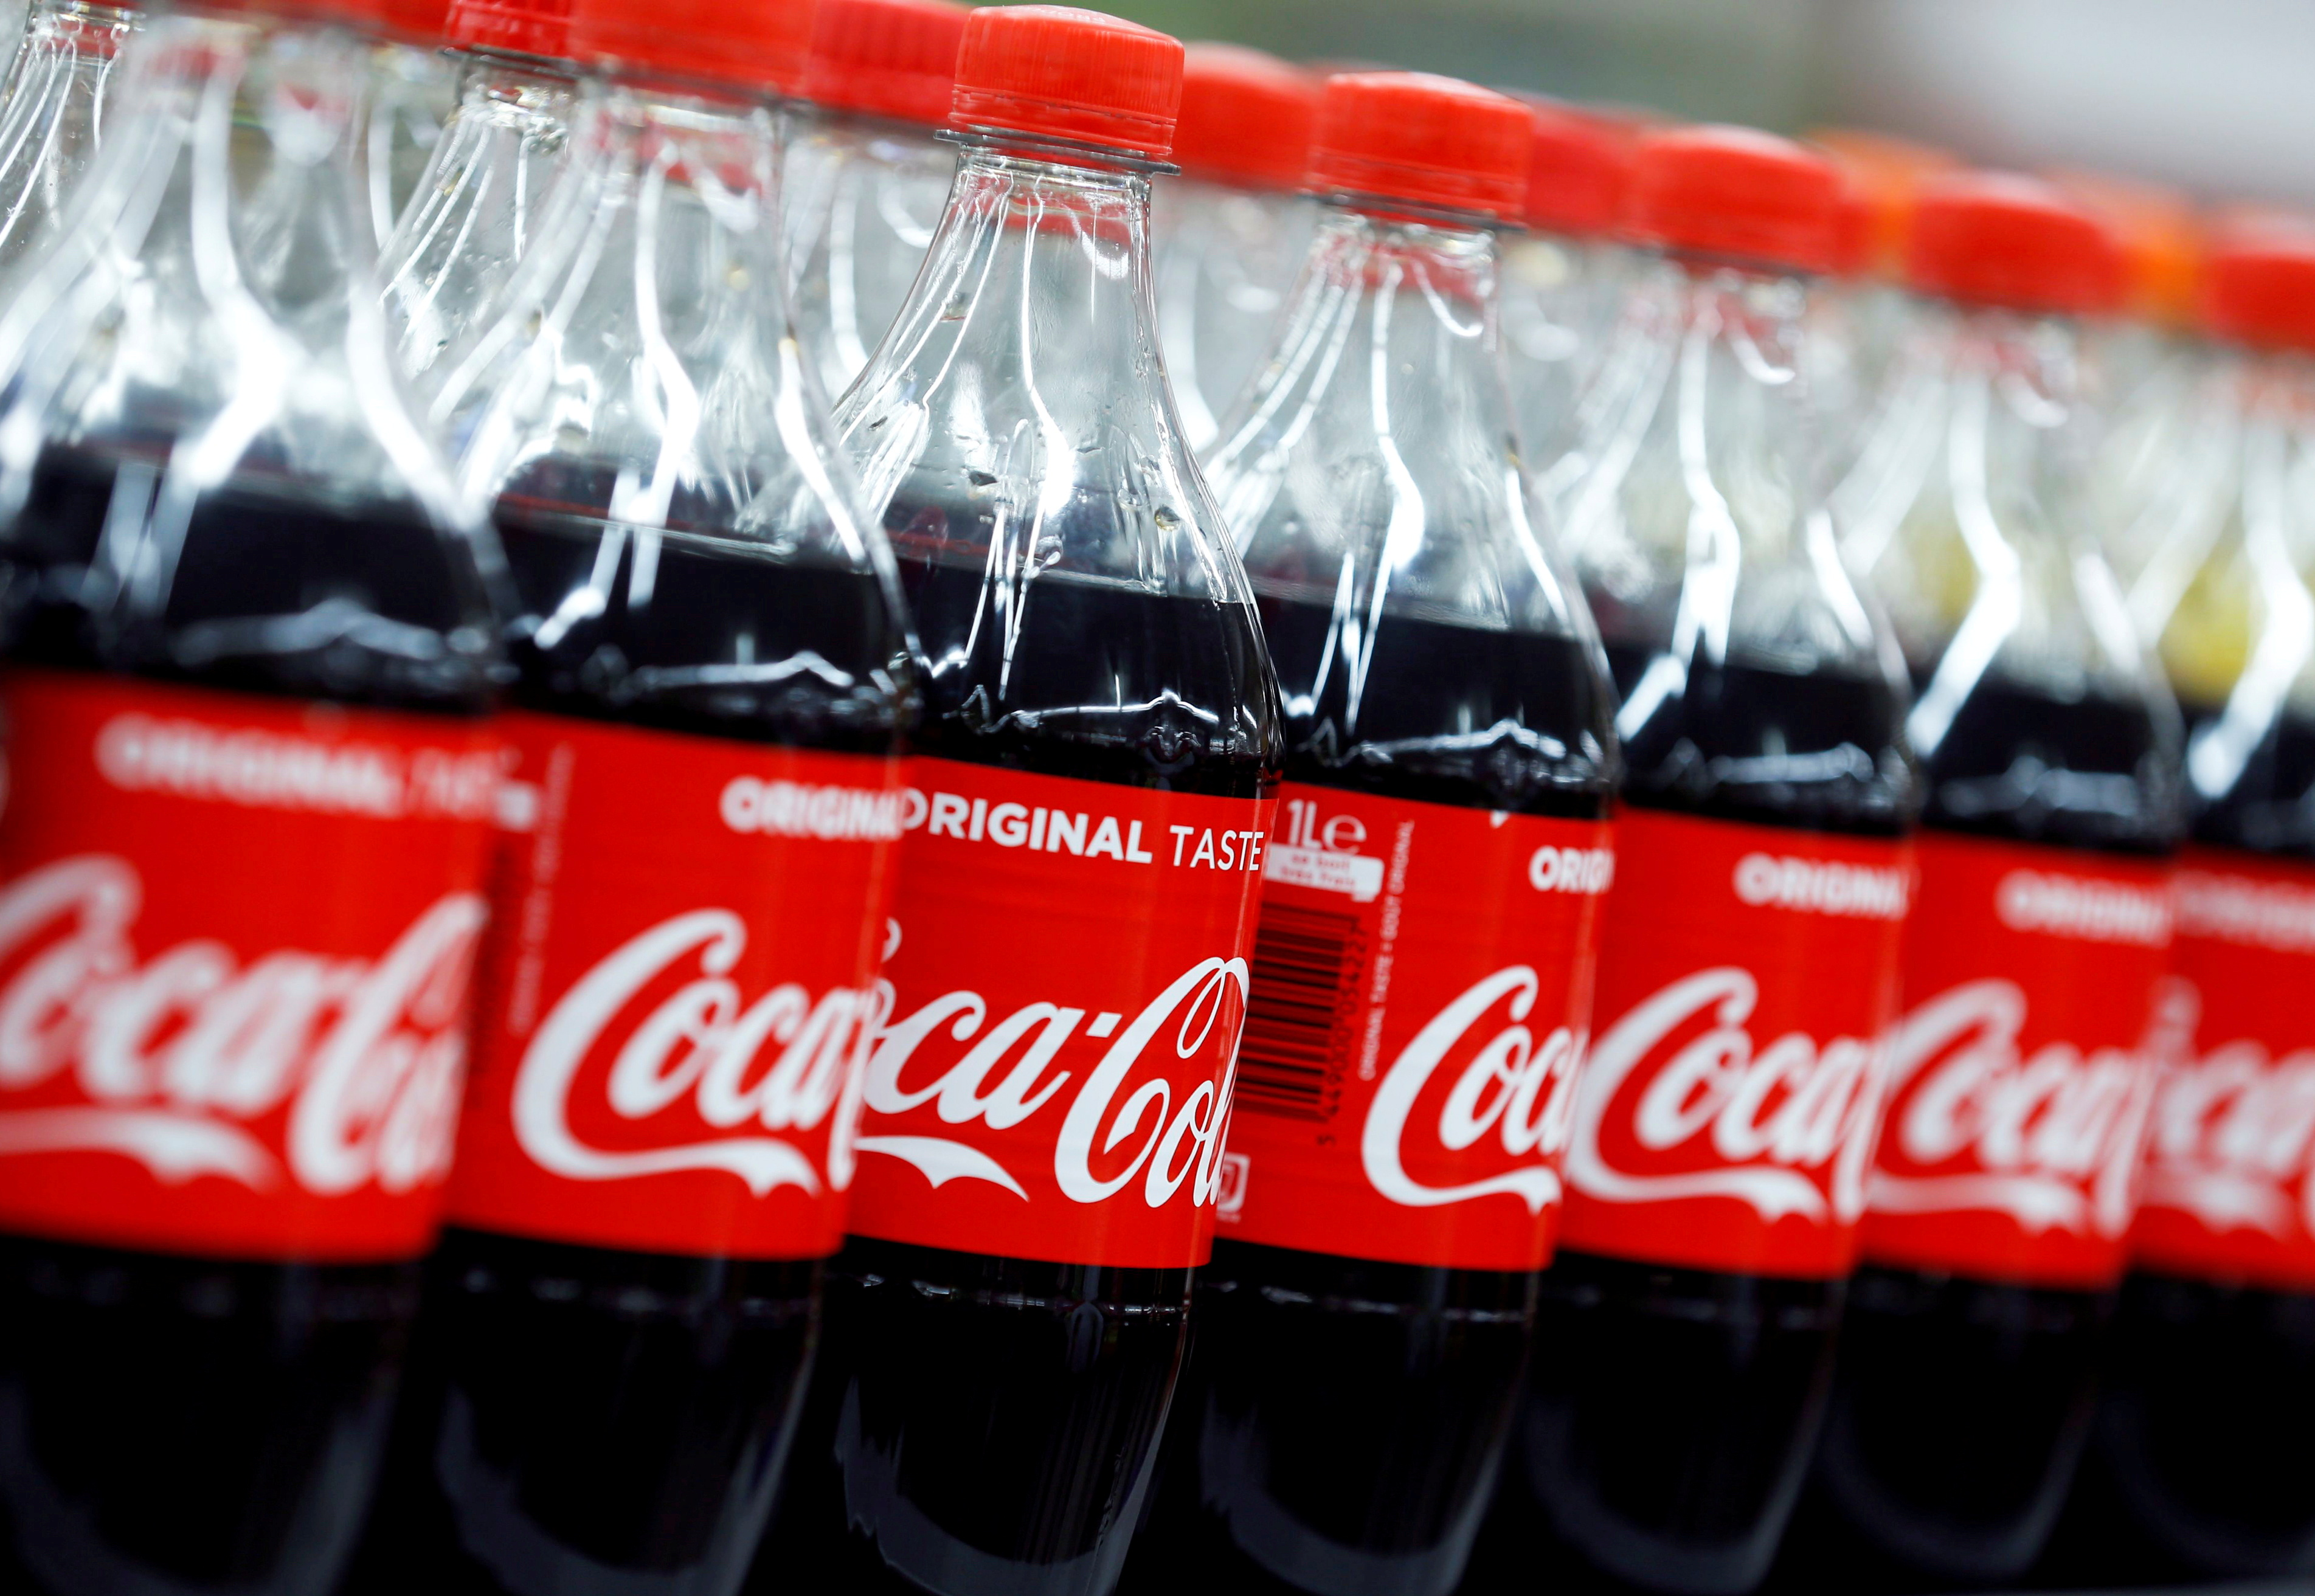 Bottles of Coca-Cola are seen at a Carrefour Hypermarket store in Montreuil, near Paris, France, February 5, 2018.  REUTERS/Regis Duvignau/File Photo